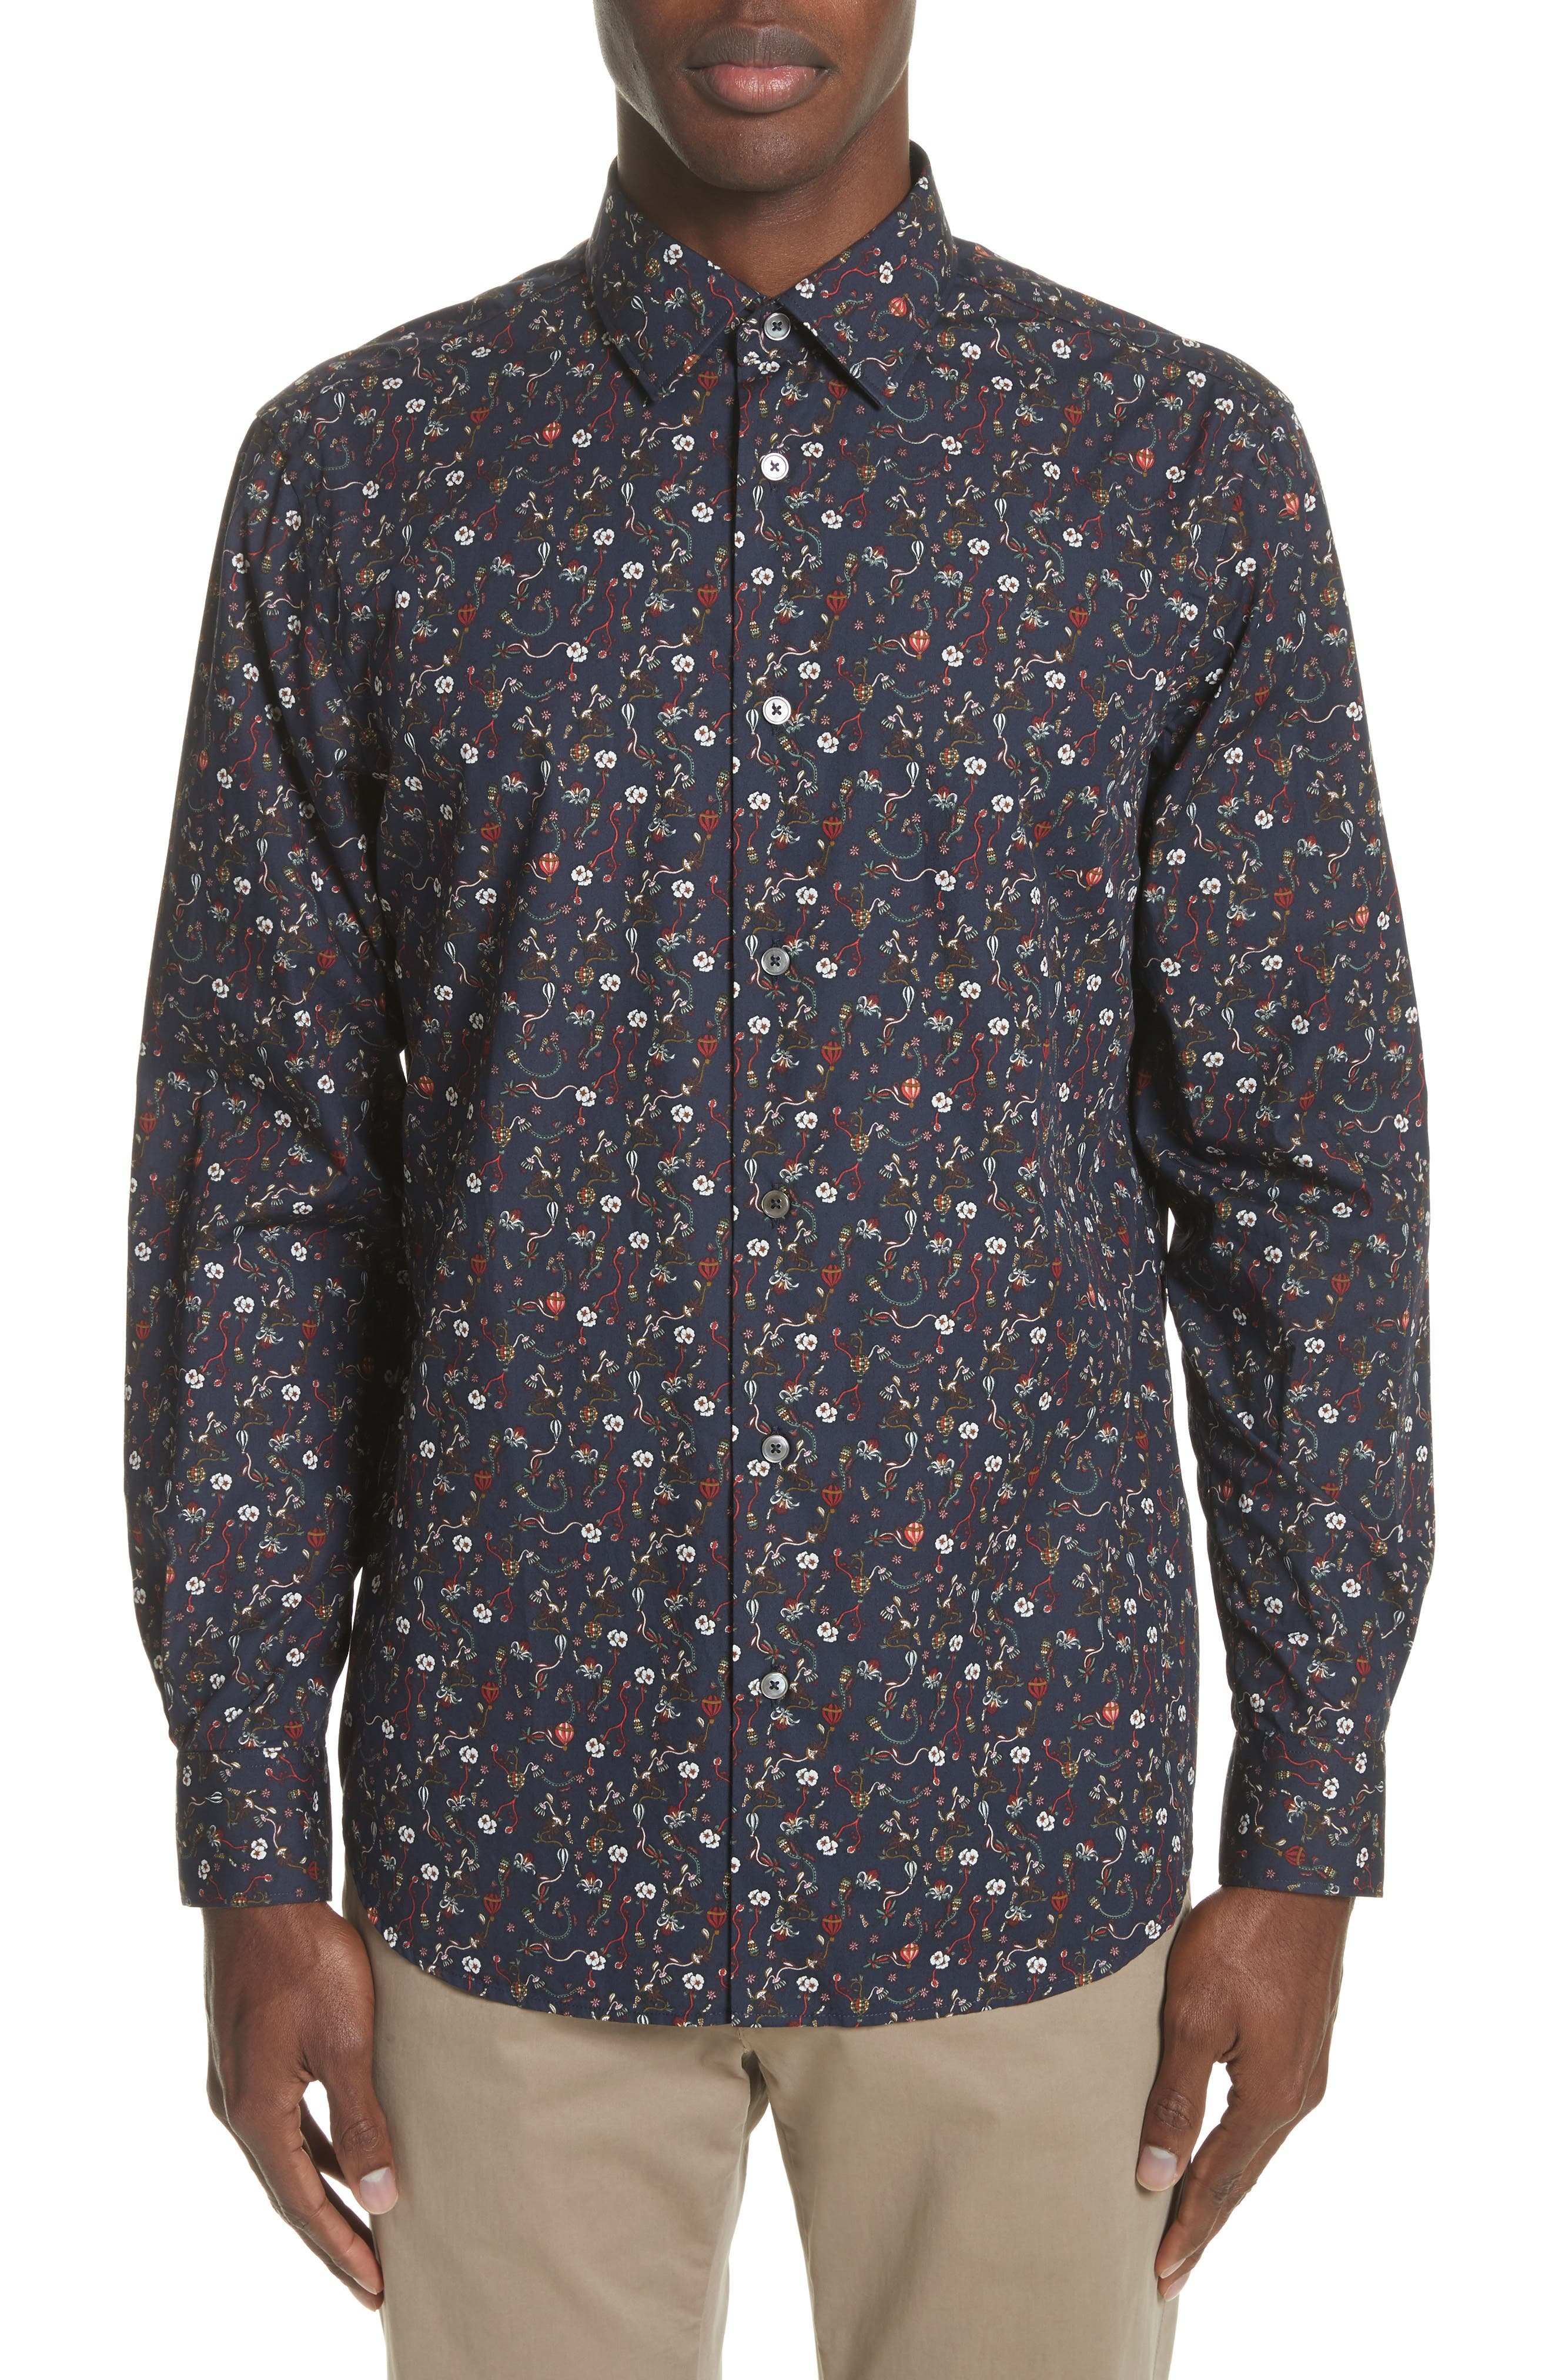 Alternate Image 1 Selected - Paul Smith Floral Print Shirt